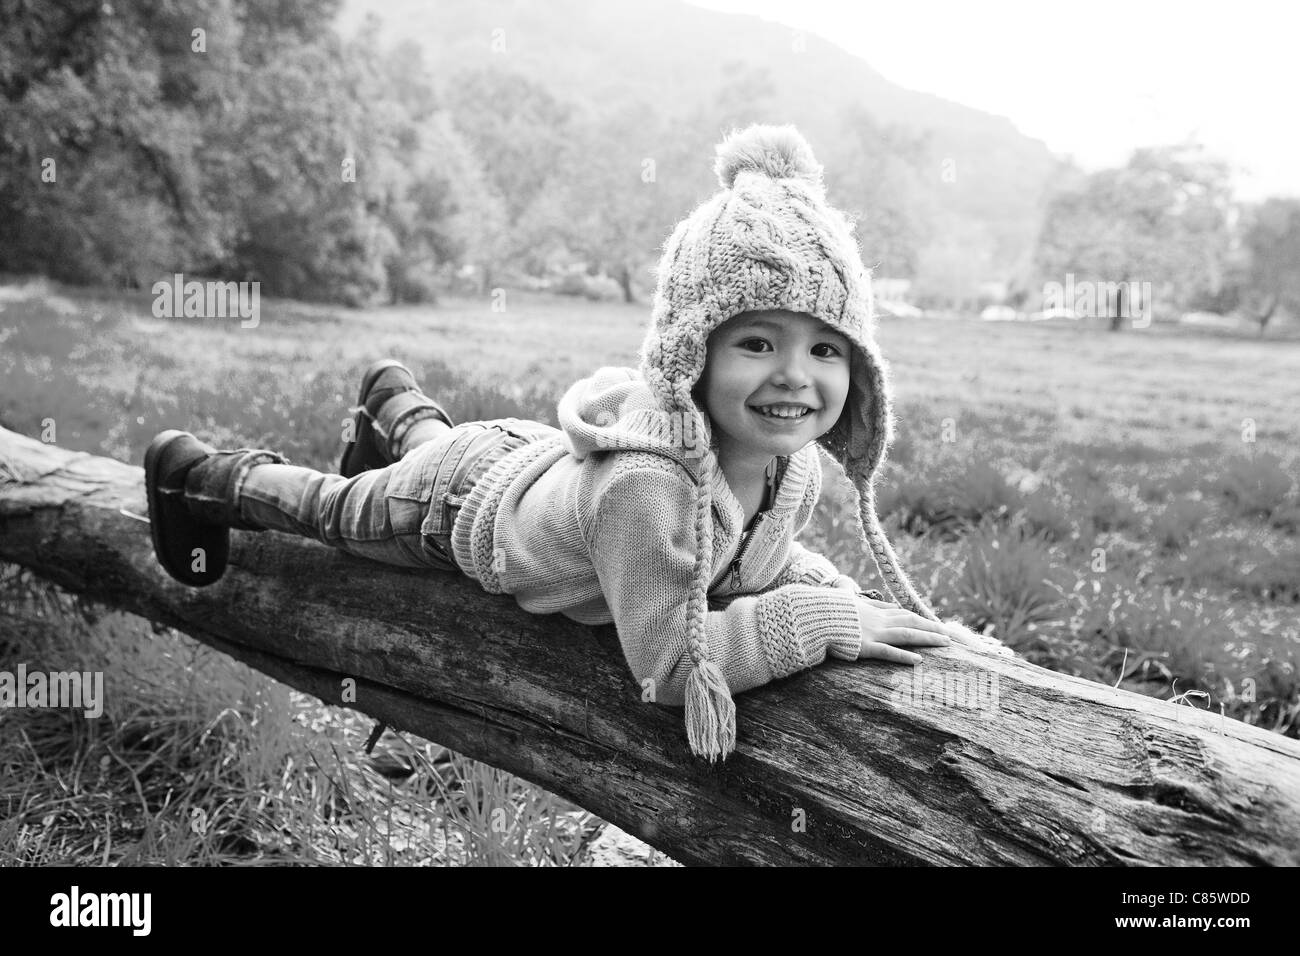 Little girl in stocking cap laying on fallen tree - Stock Image